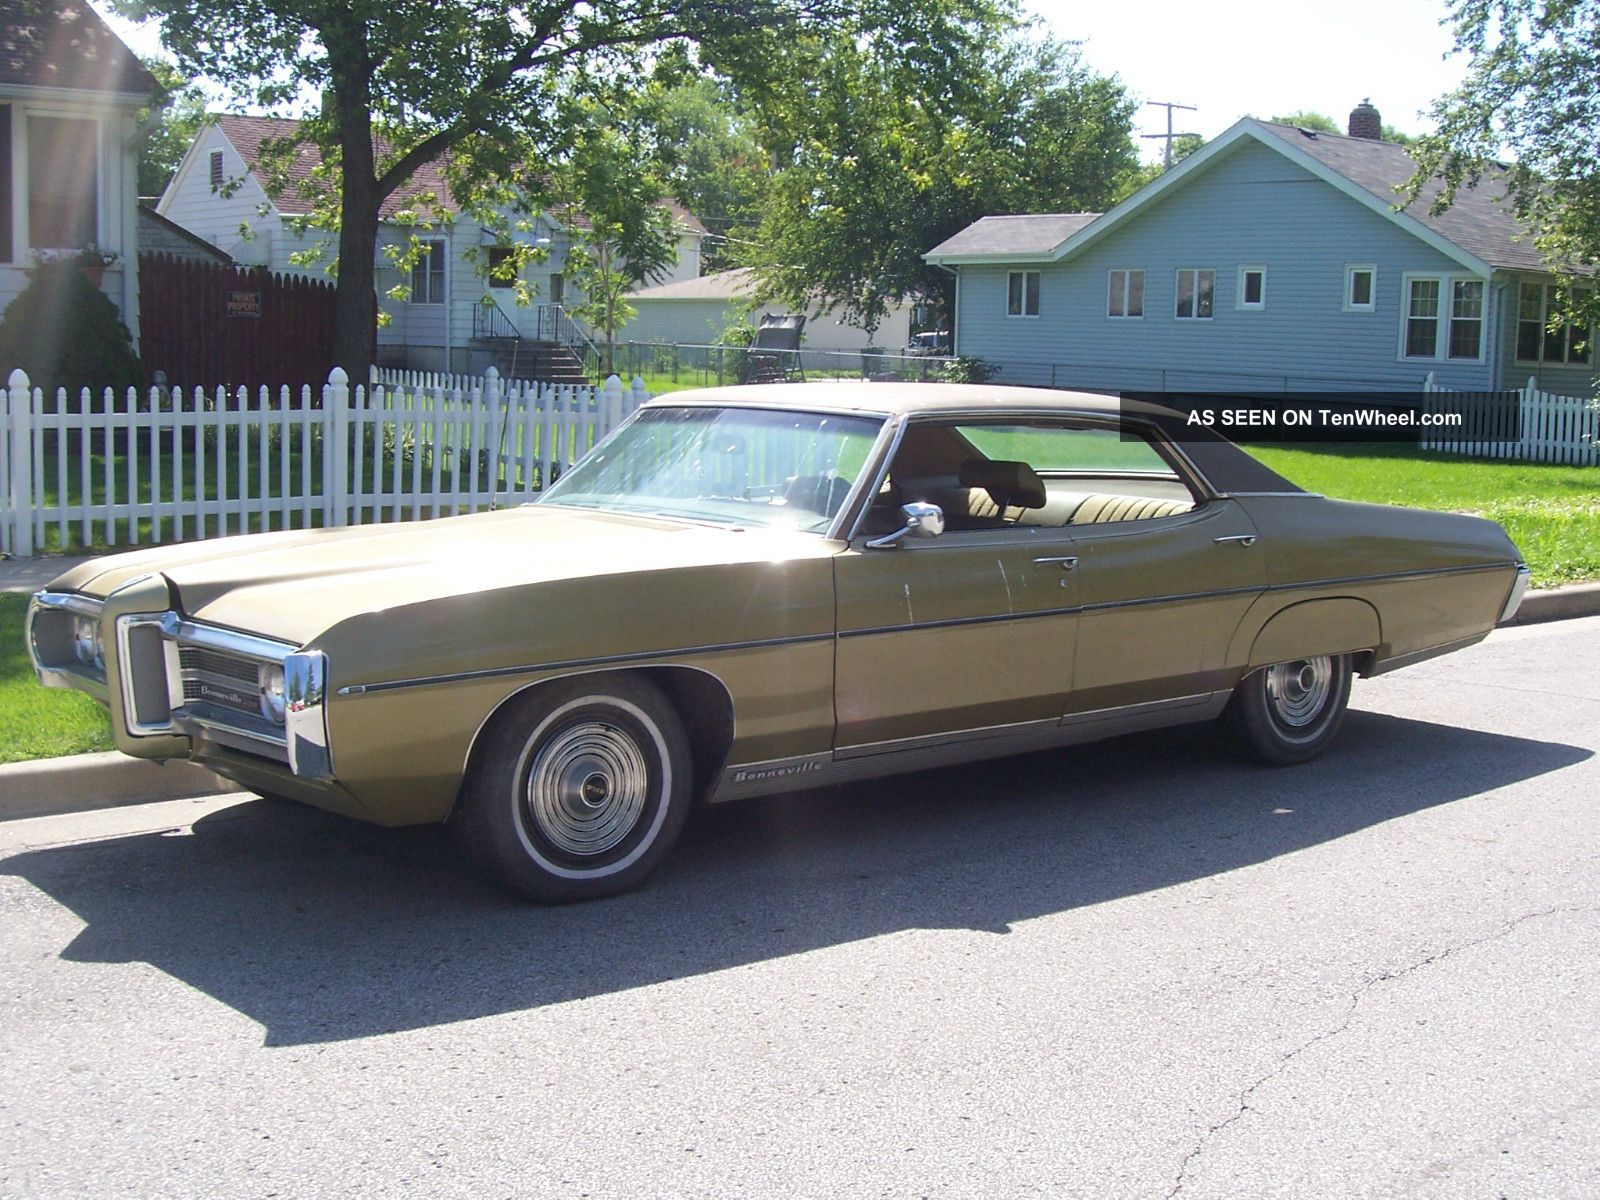 Pontiac Bonneville, Four Door Hardtop. Oklahma Car Bonneville photo 5